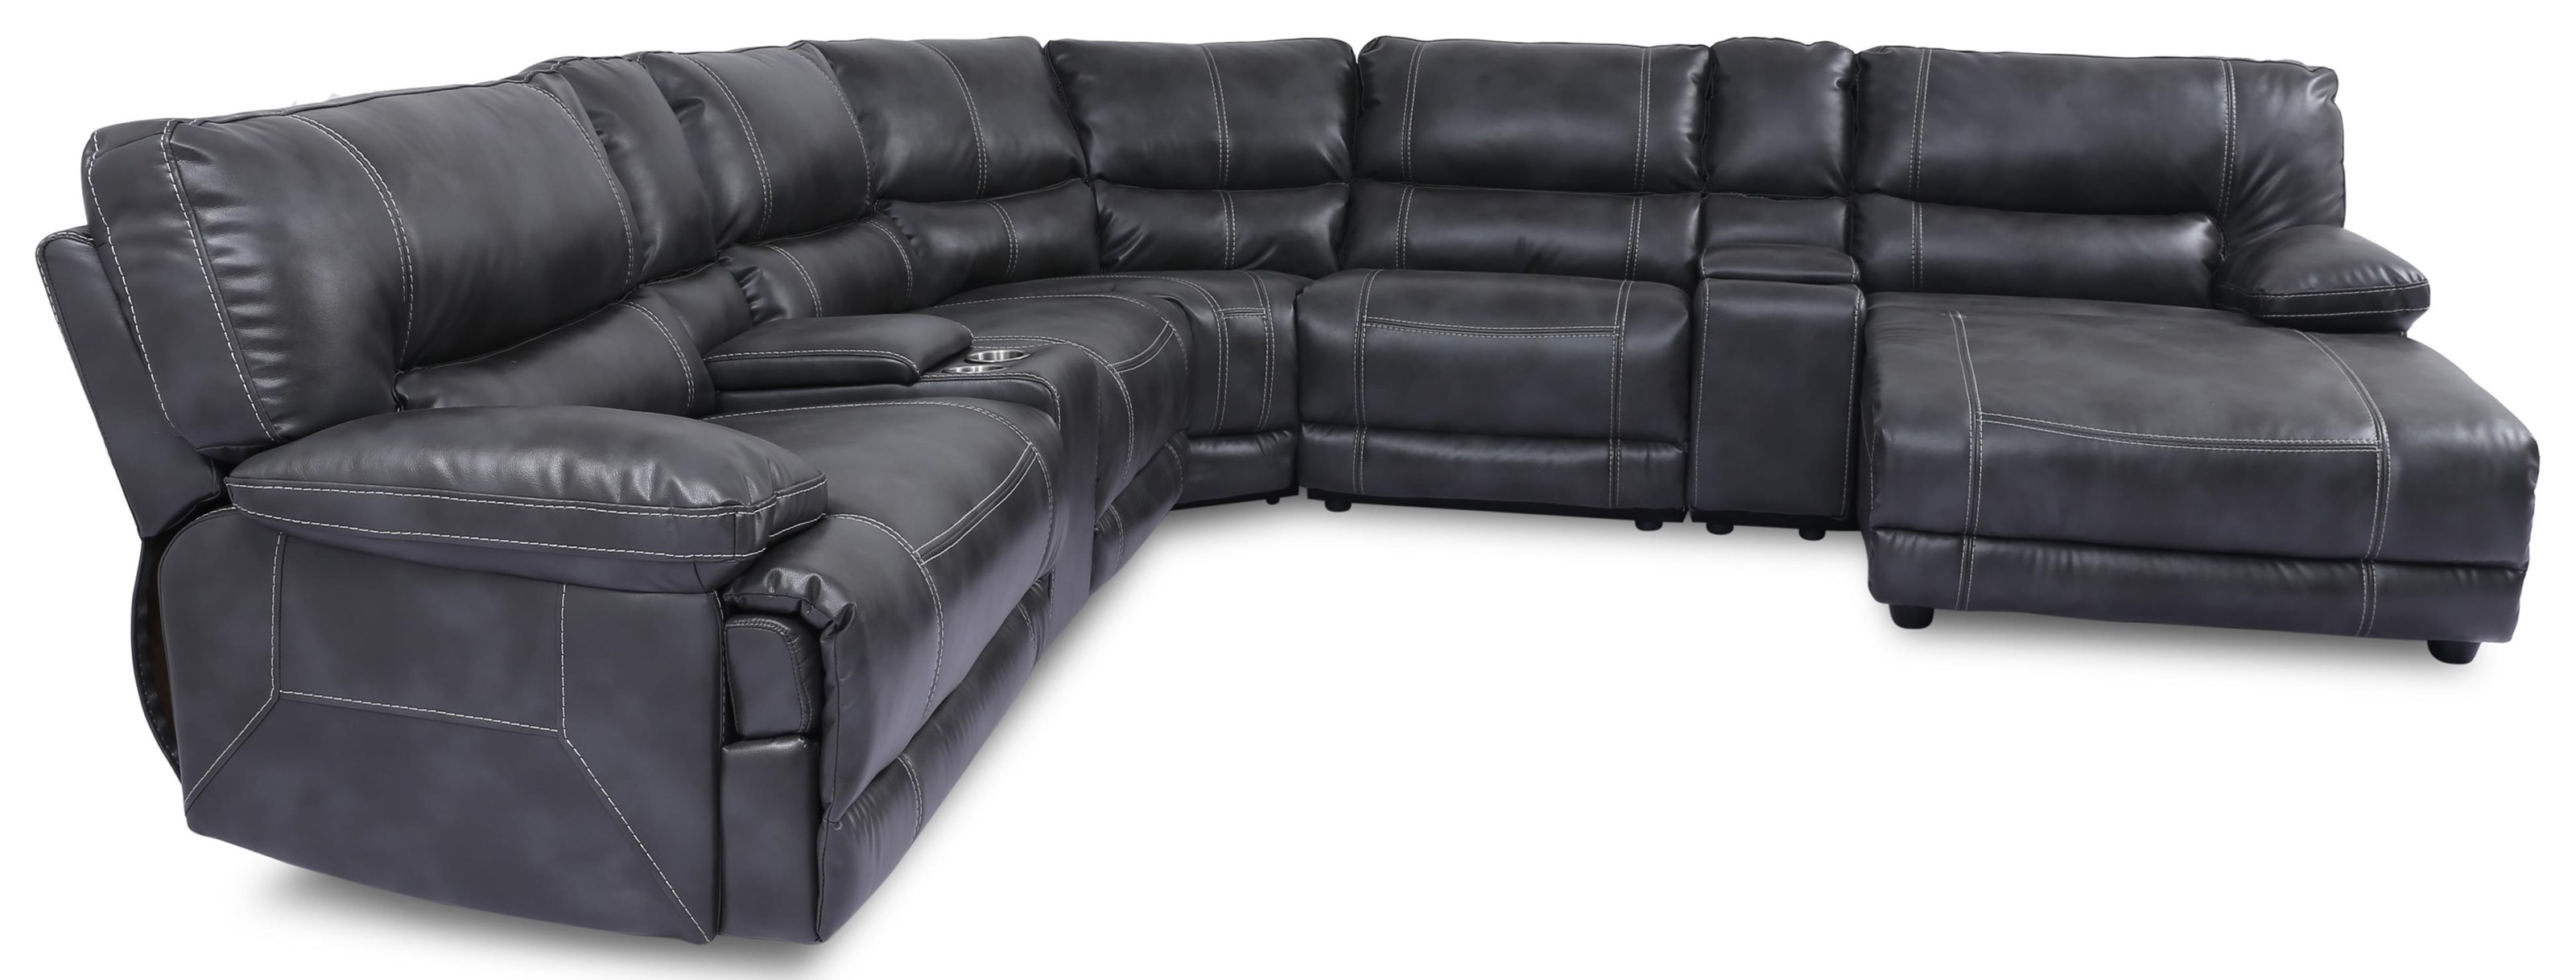 7pc Motion Sectional w Chaise